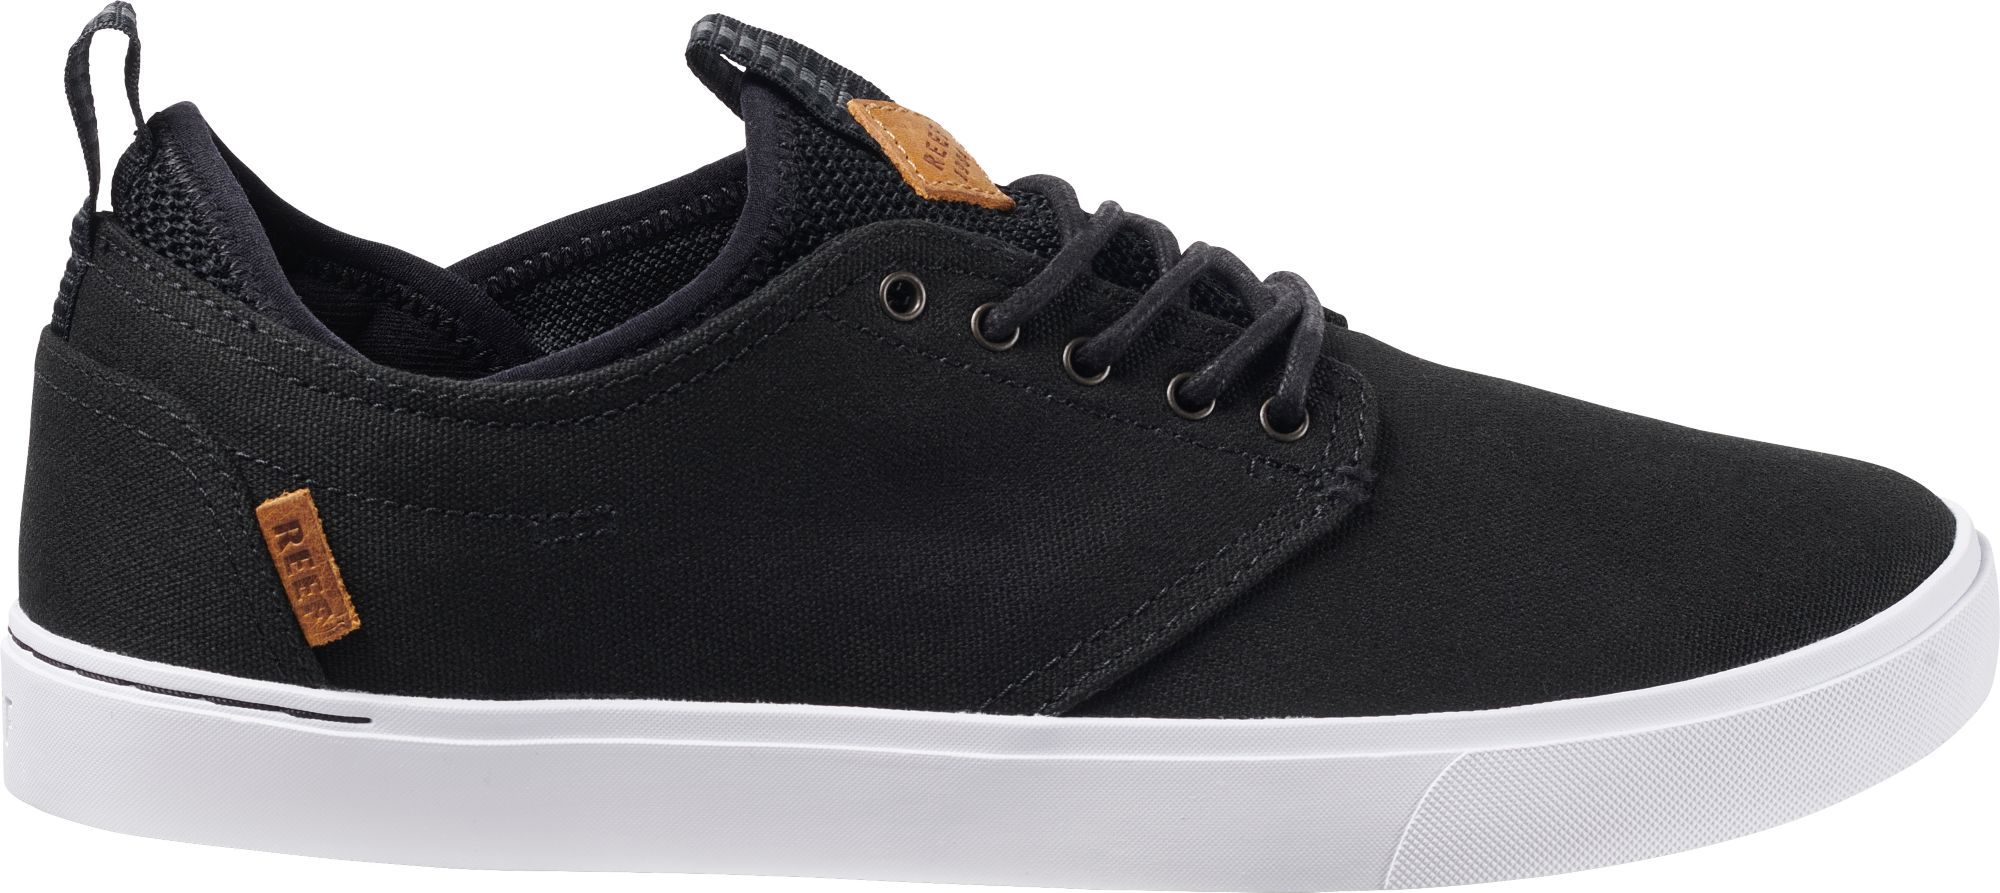 Casual shoes, Skate shoes